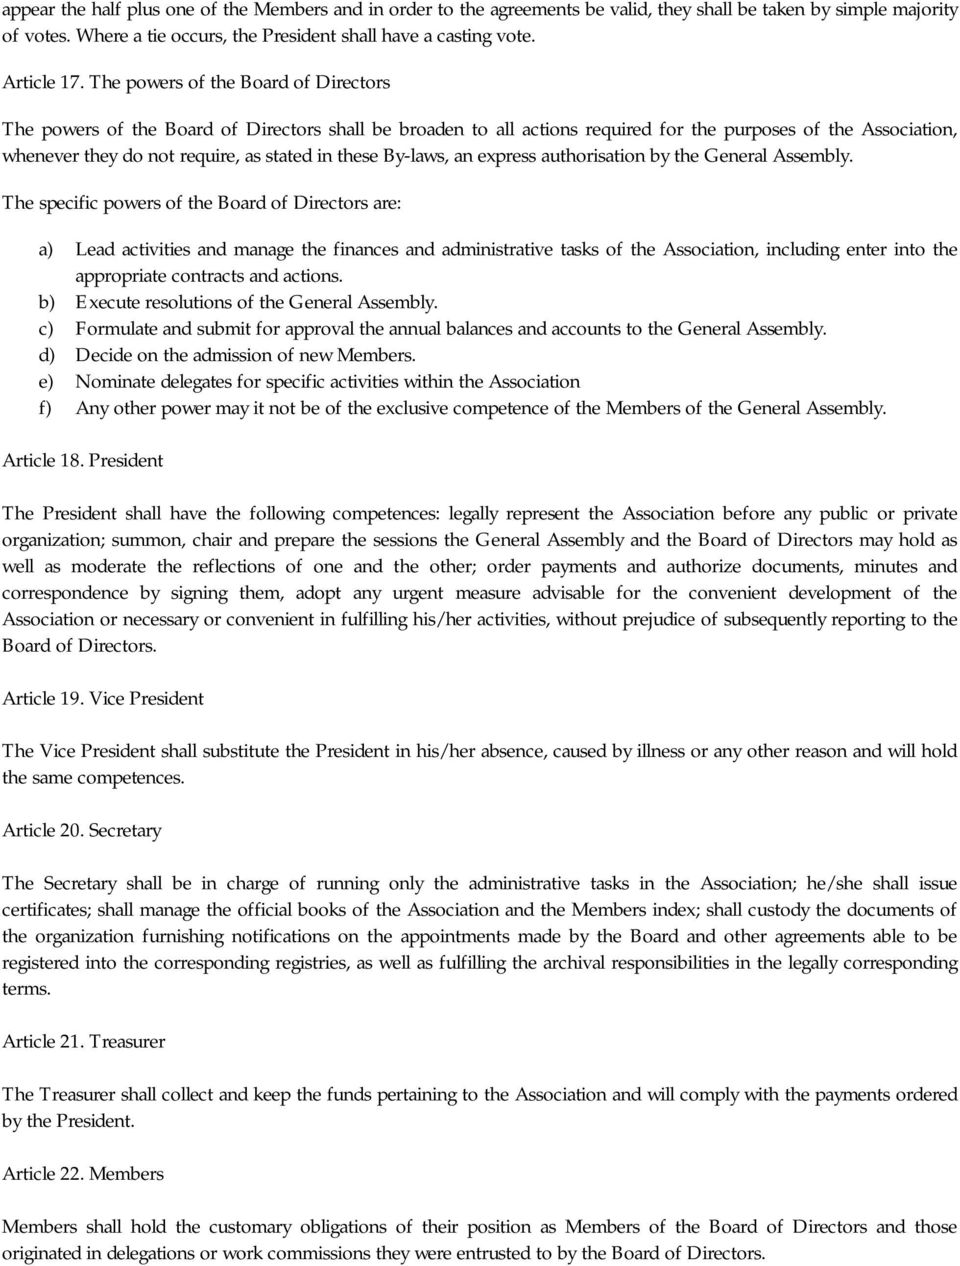 The powers of the Board of Directors The powers of the Board of Directors shall be broaden to all actions required for the purposes of the Association, whenever they do not require, as stated in